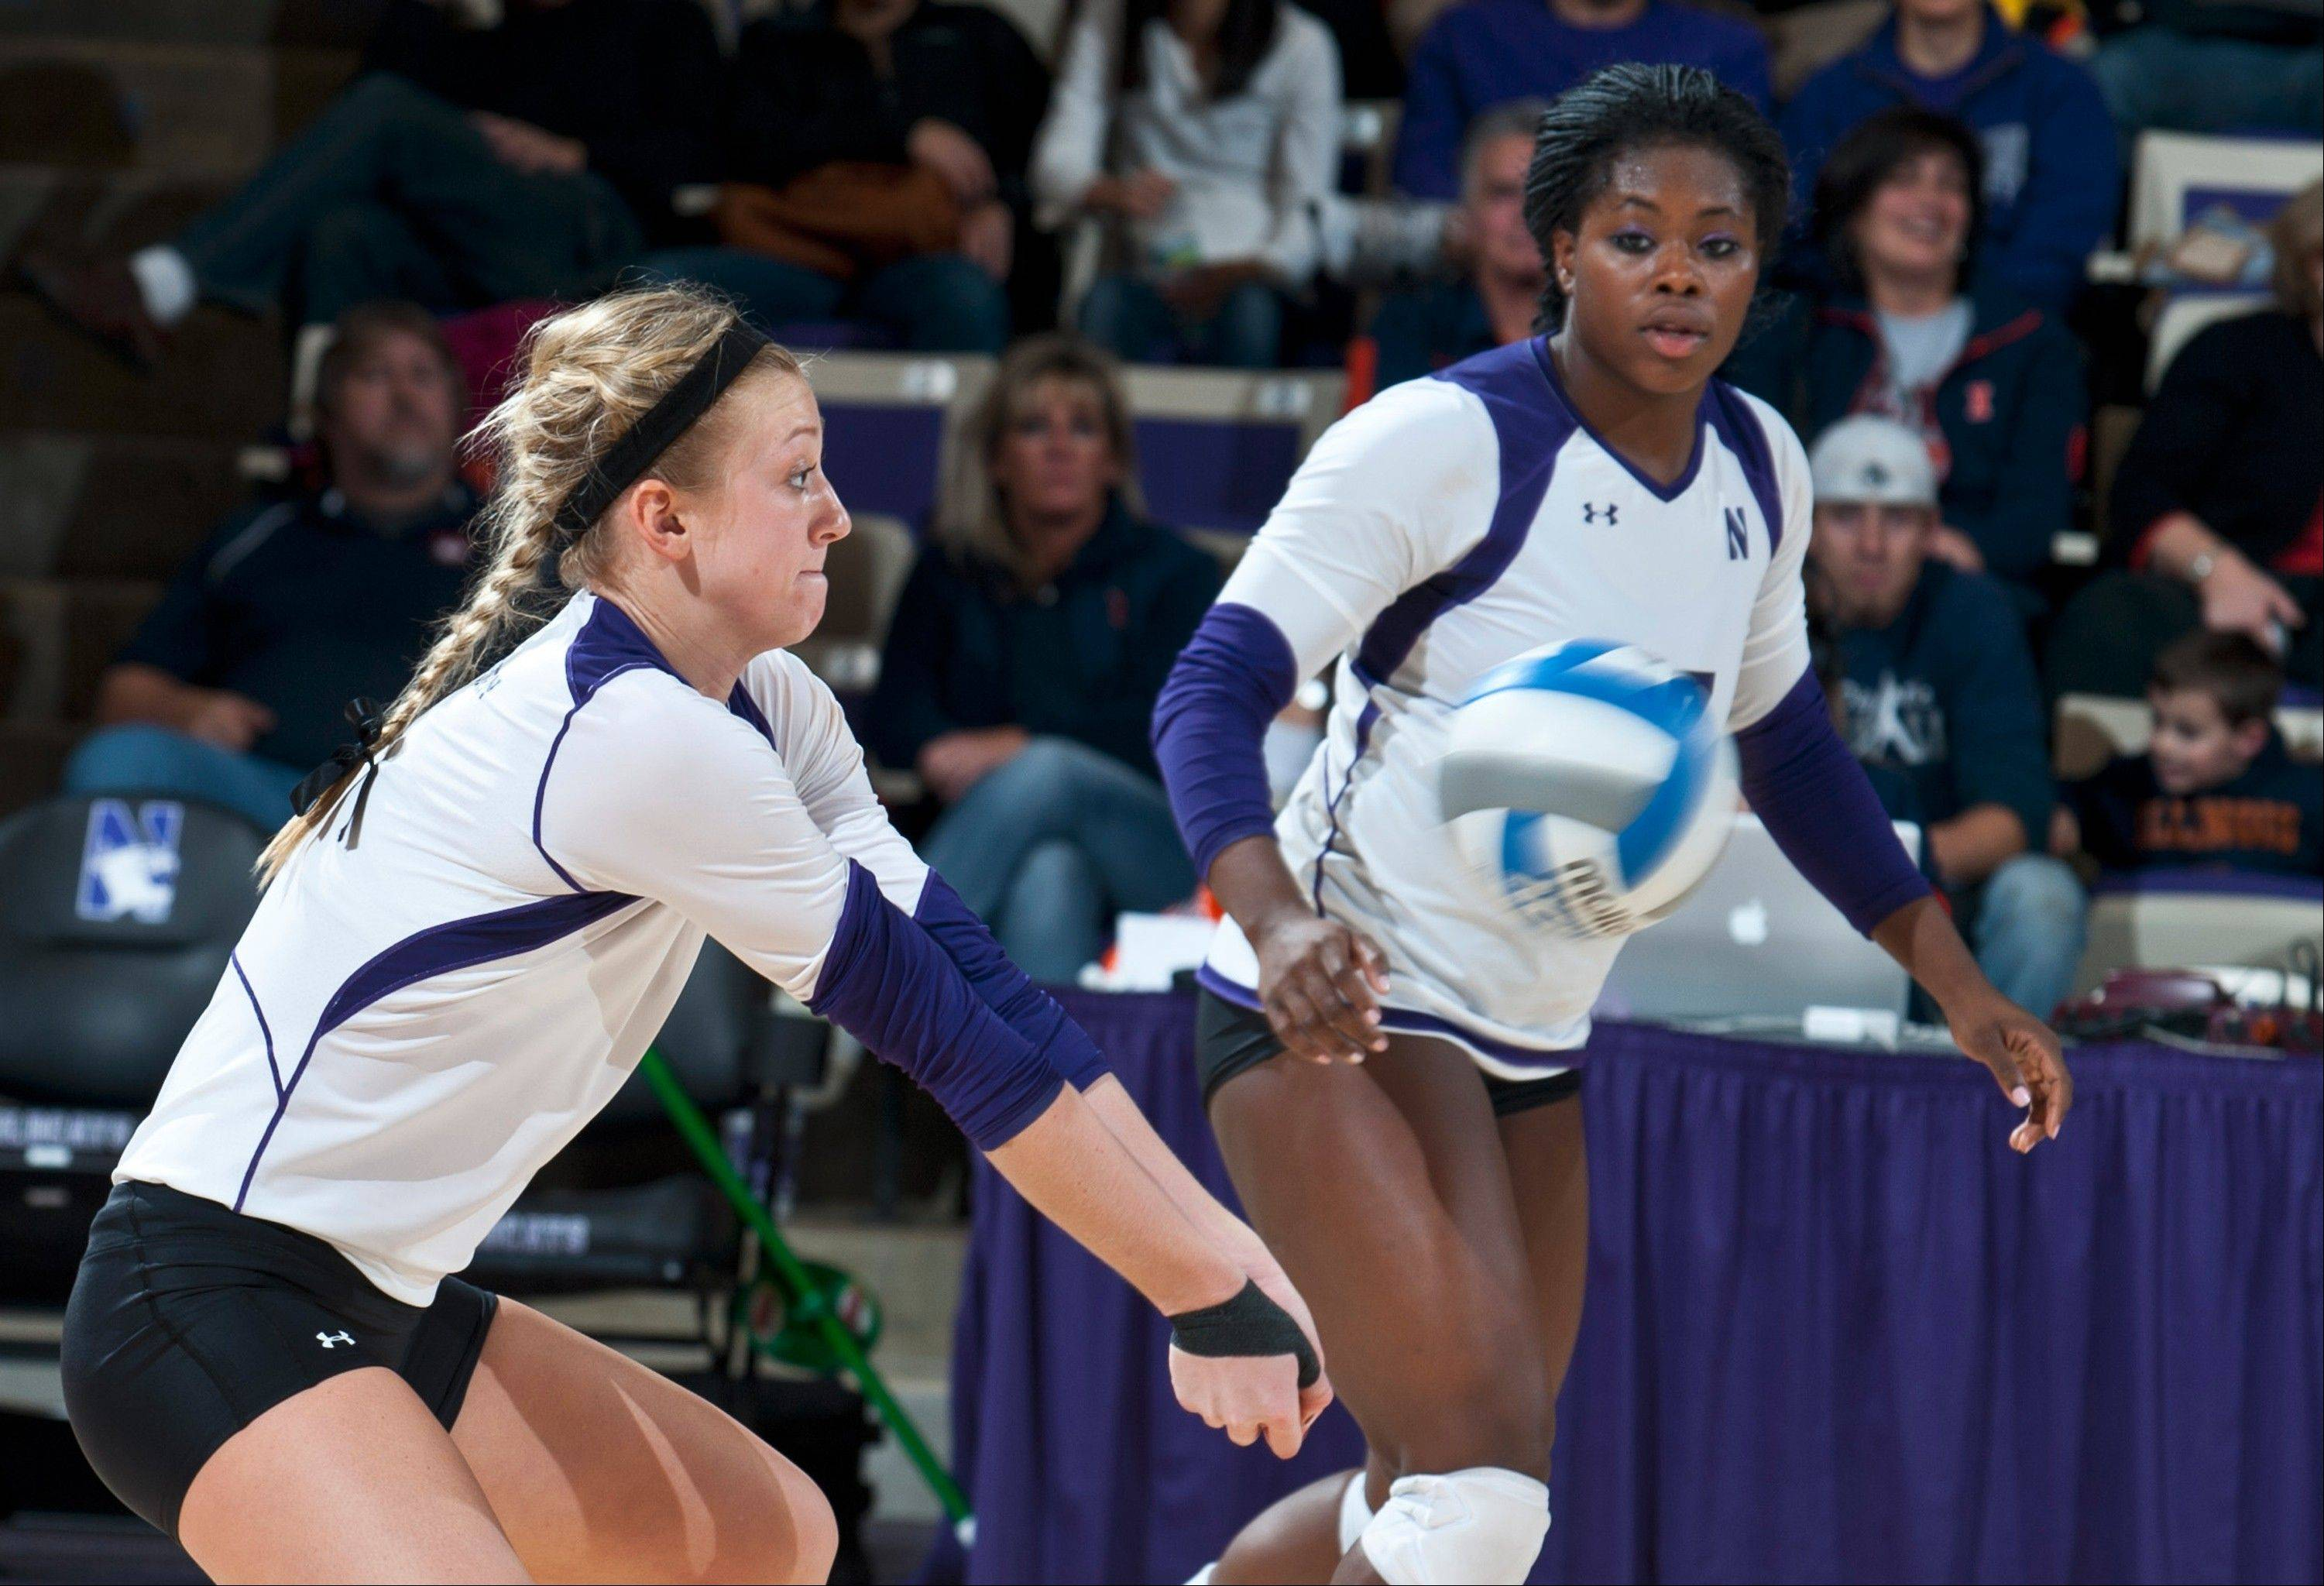 Burlington Central graduate Stephanie Holthus, left, is having a stellar junior season for the Northwestern University women's volleyball team.